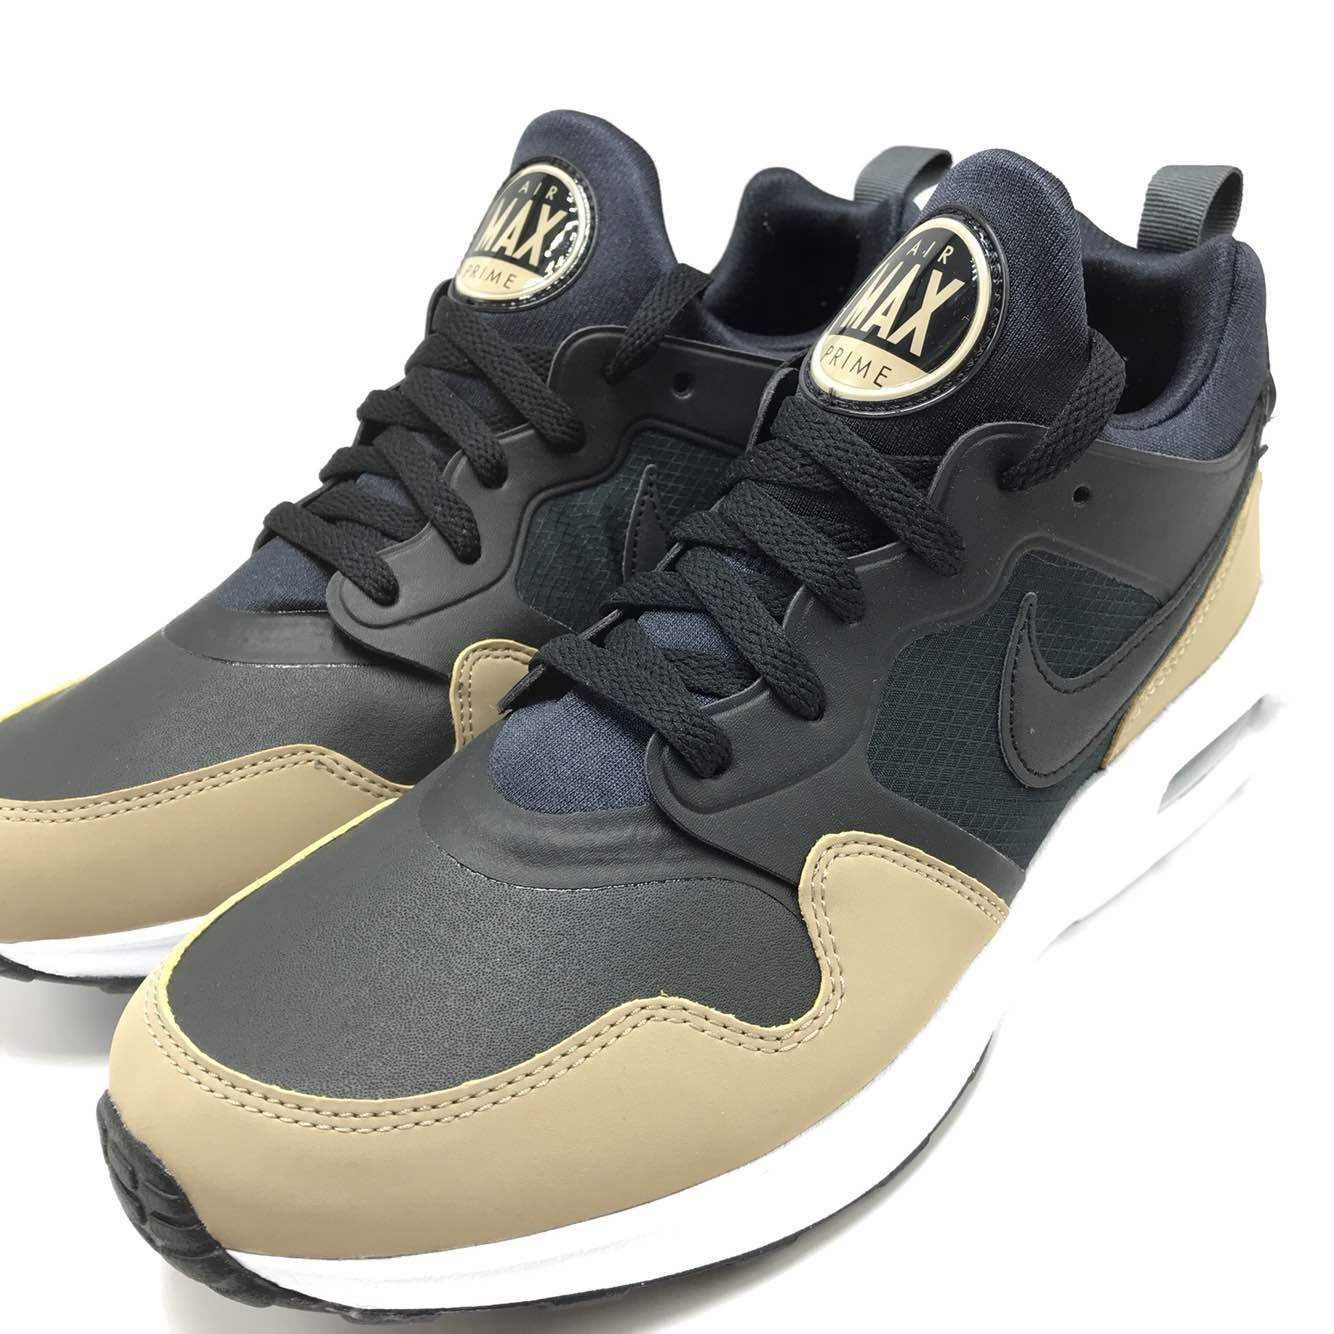 Nike Air Max Prime SL Men's Running shoes Black Black-Khaki-Dark Grey 876069-004